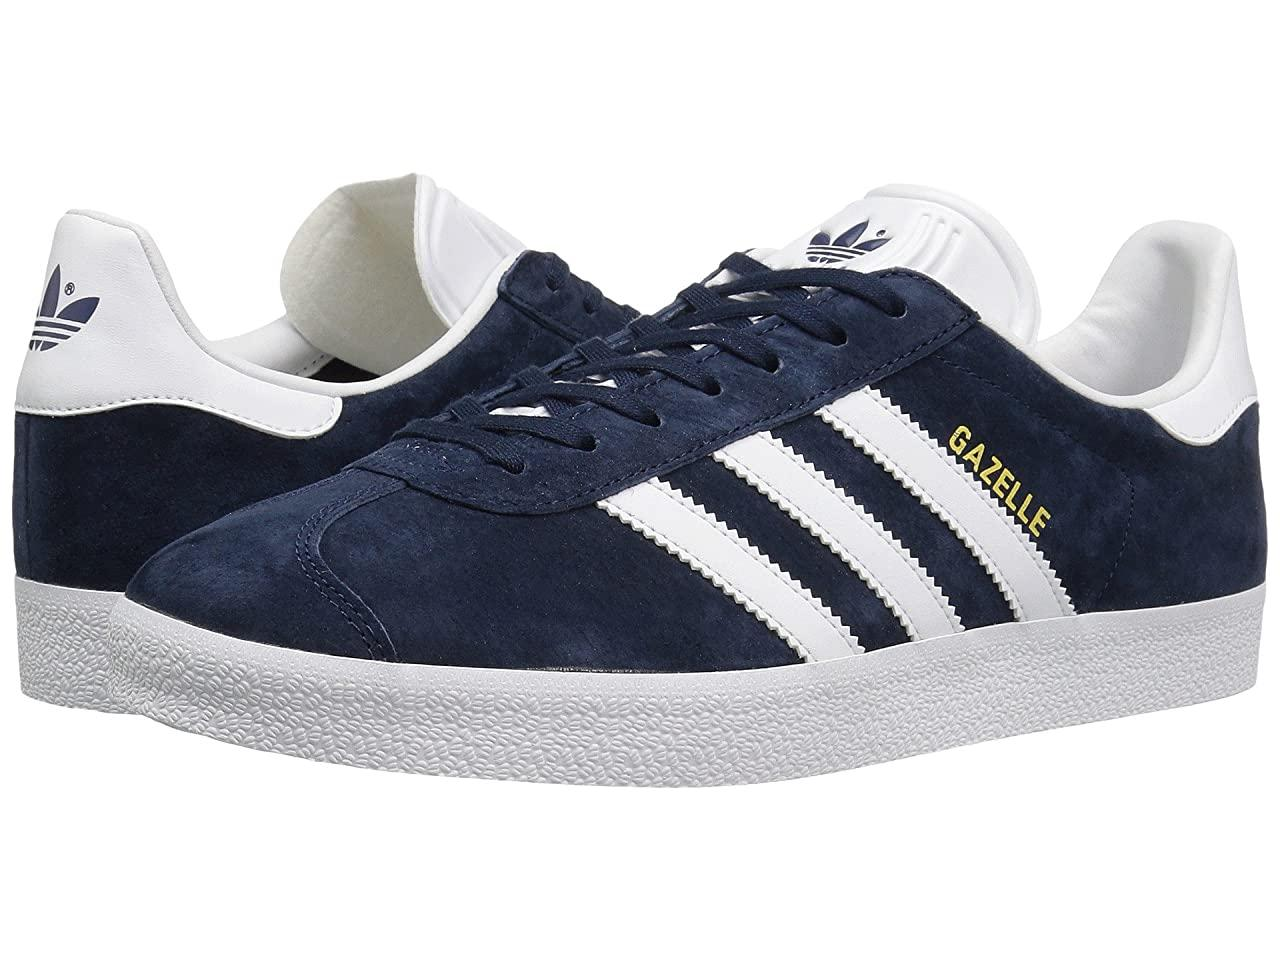 Кроссовки/Кеды (Оригинал) adidas Originals Gazelle Foundation Collegiate Navy/White/Gold Metallic